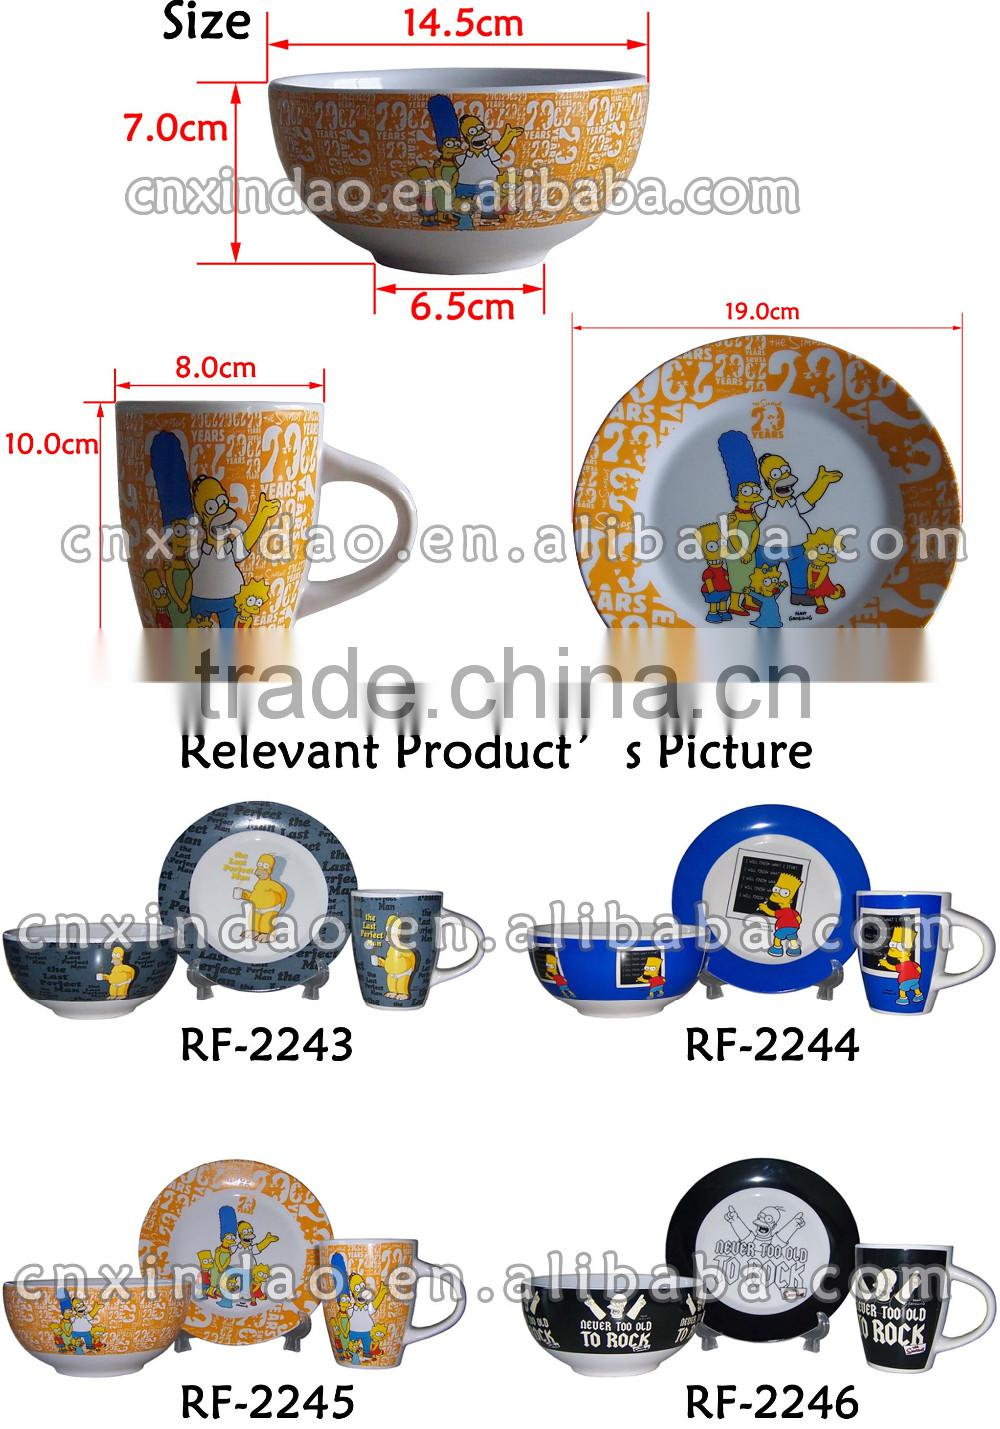 Round Shape Wholesale Ceramic Latest Hot Sale Dinner Set with Popular Design